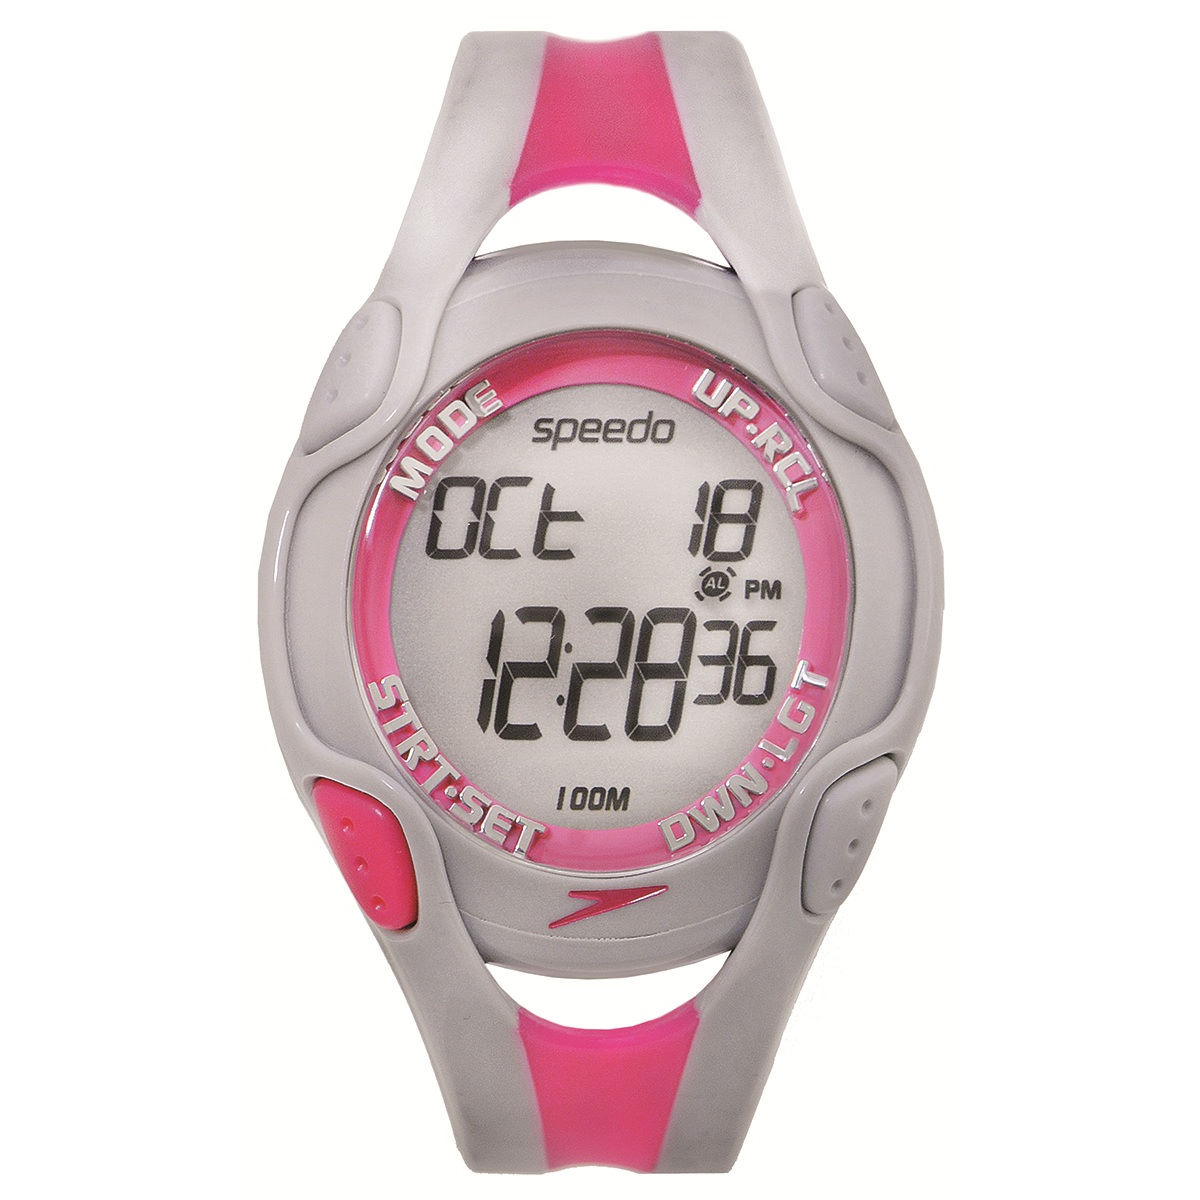 Speedo Aquacoach Watch